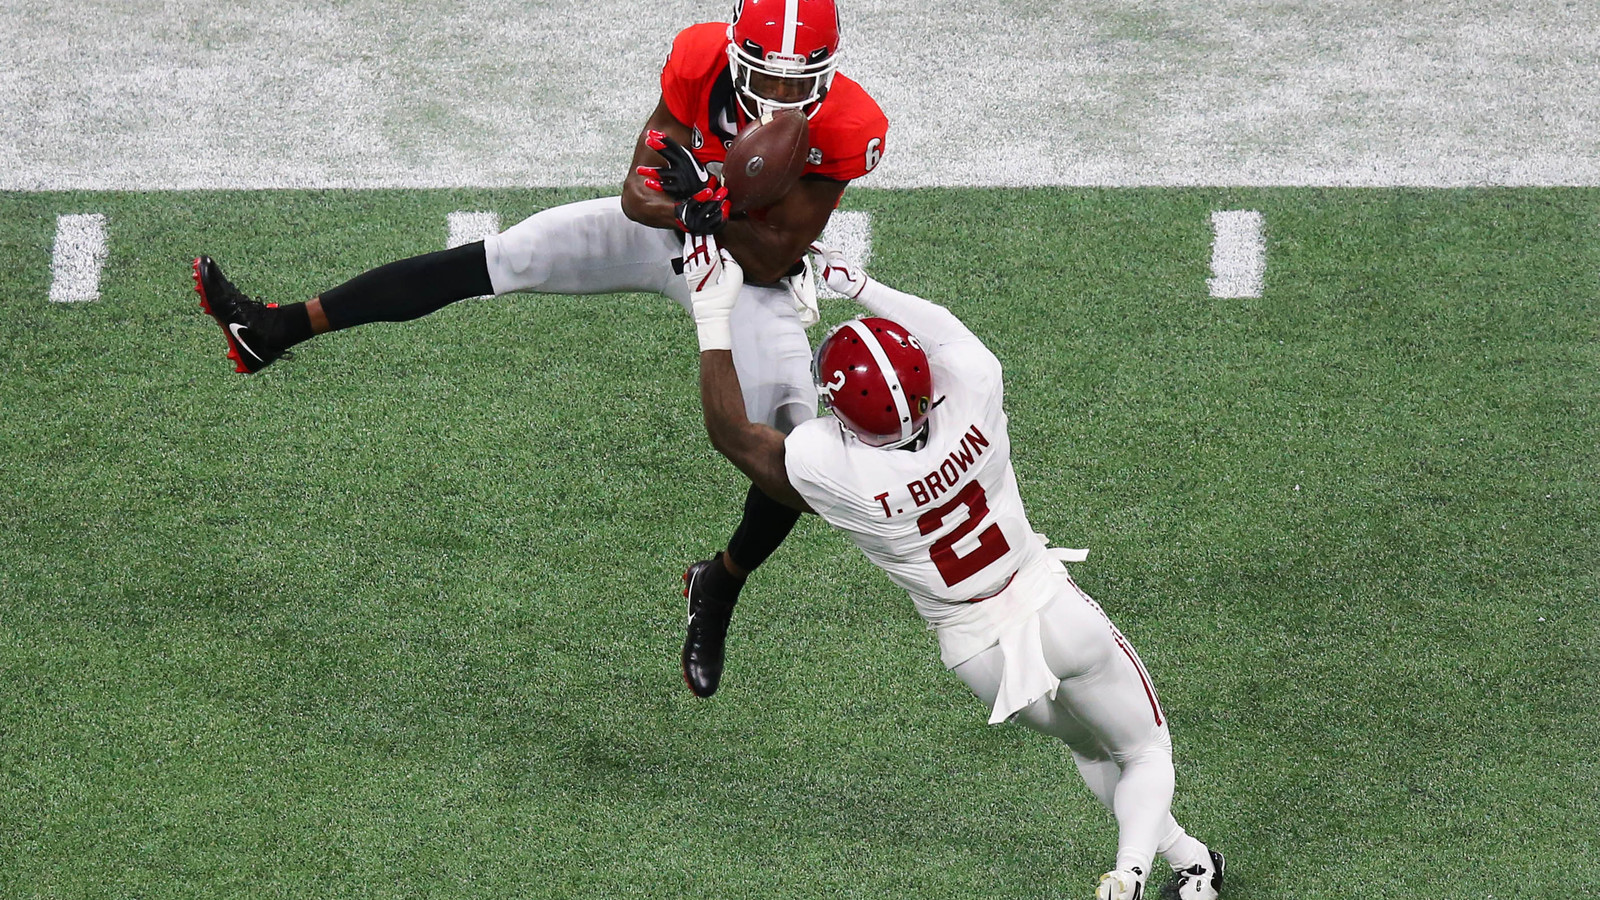 low priced b7d54 3f5f6 Tony Brown steals ball away from Georgia WR on interception ...